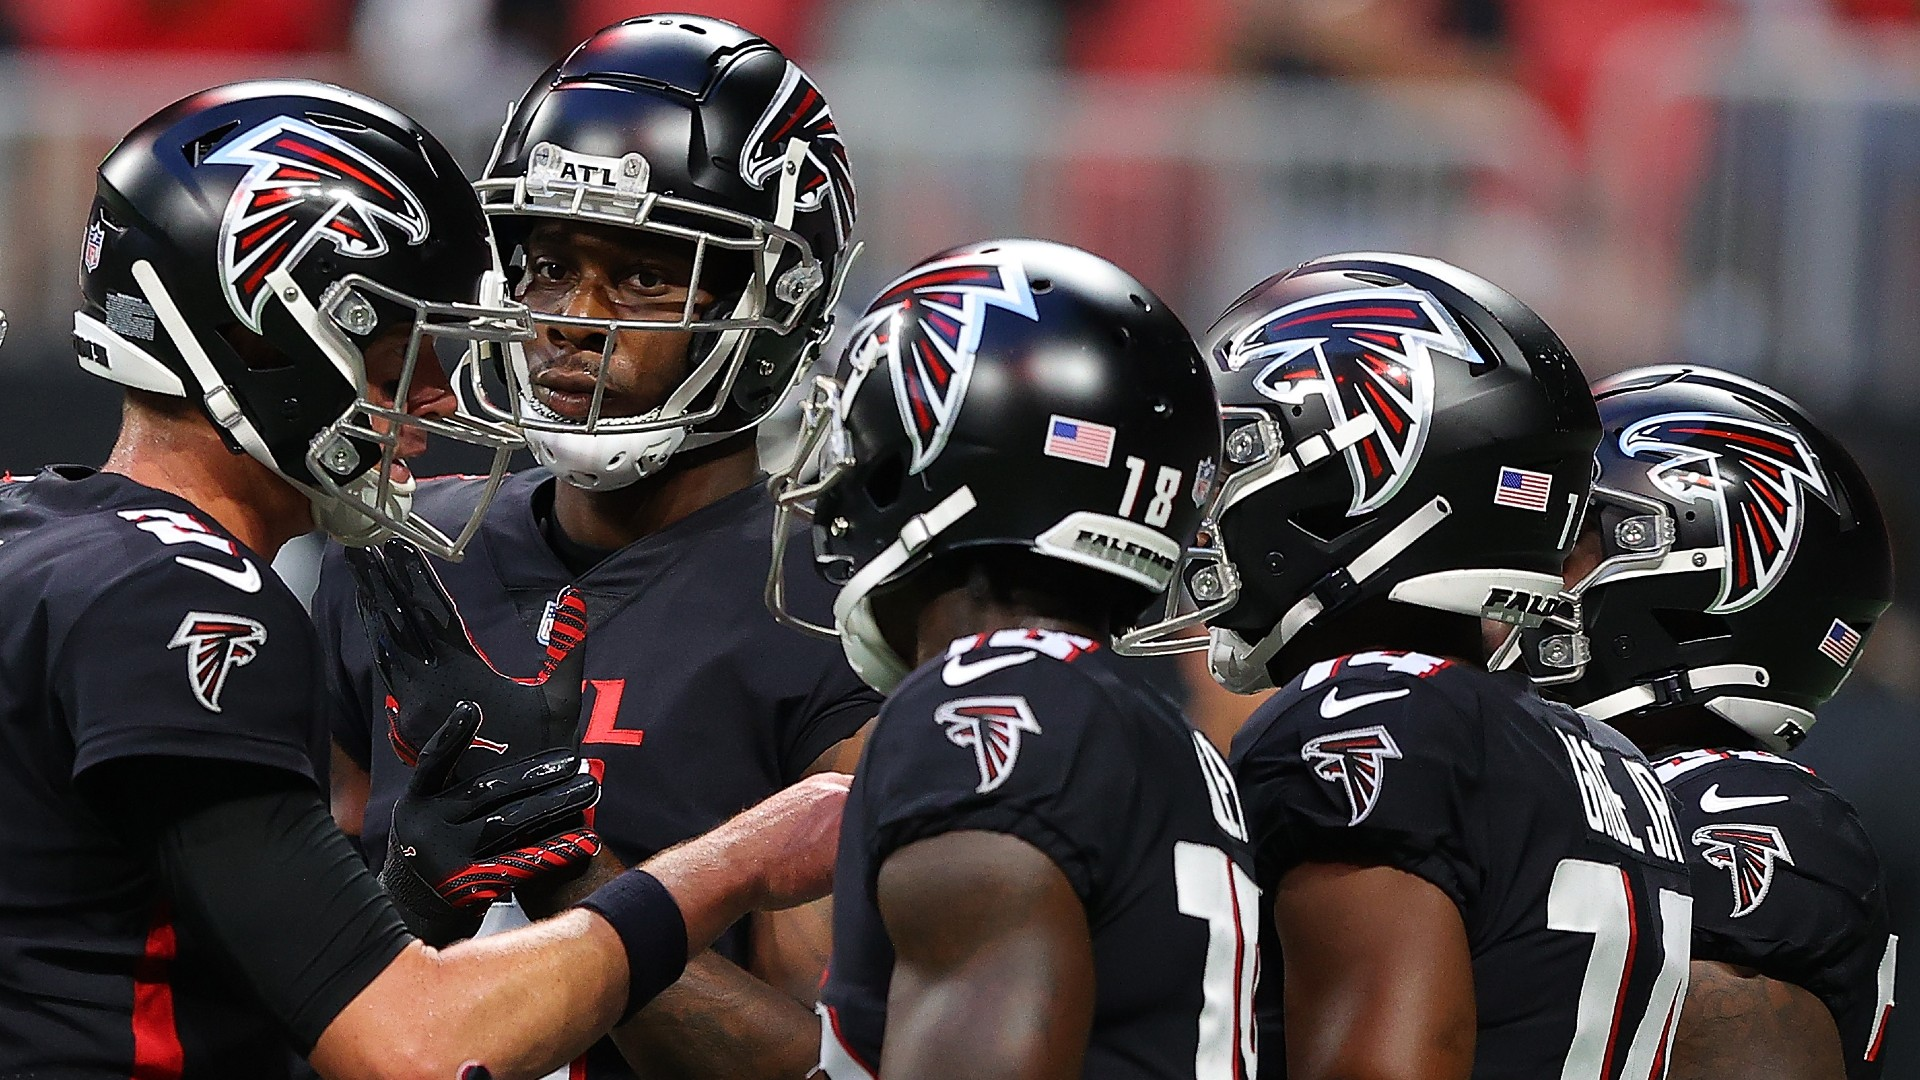 Matt Ryan explains why Calvin Ridley and Kyle Pitts live up to the Falcons fantasy football hype